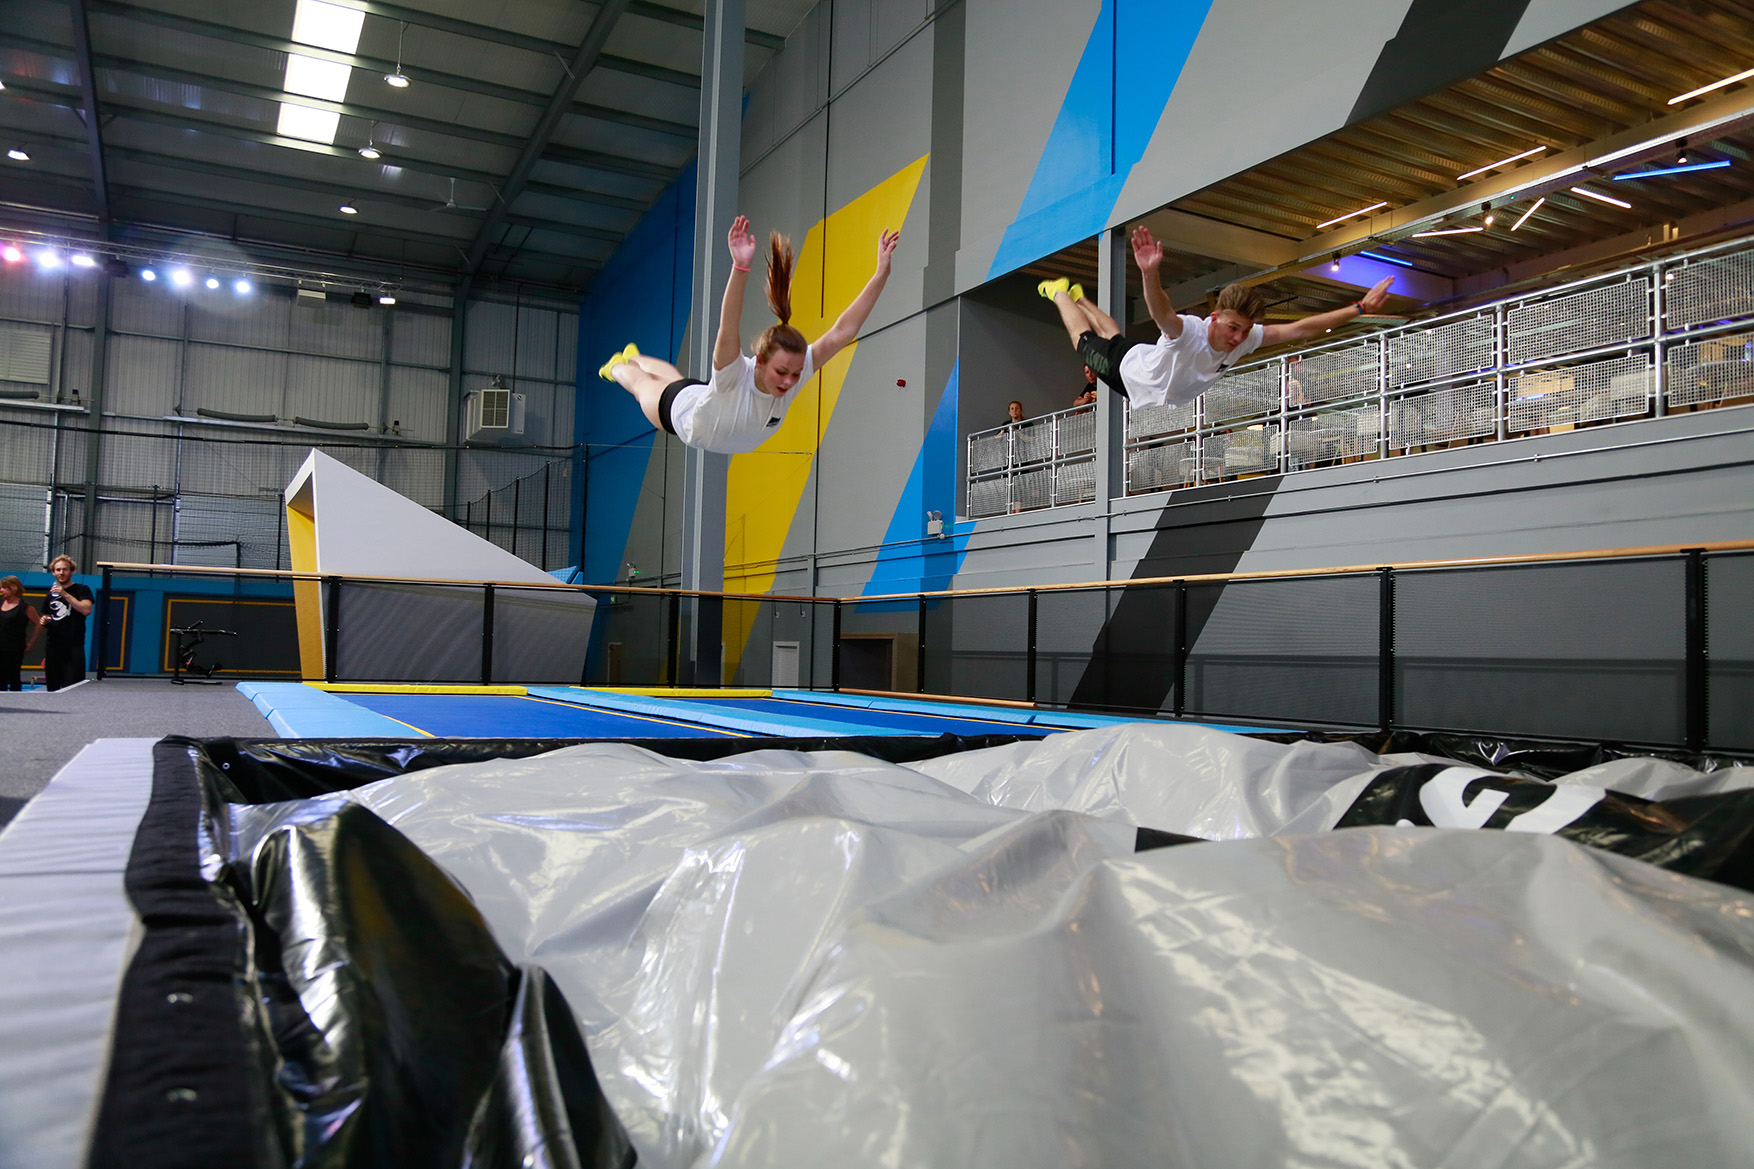 freejumping activities oxygen freejumping trampoline park. Black Bedroom Furniture Sets. Home Design Ideas